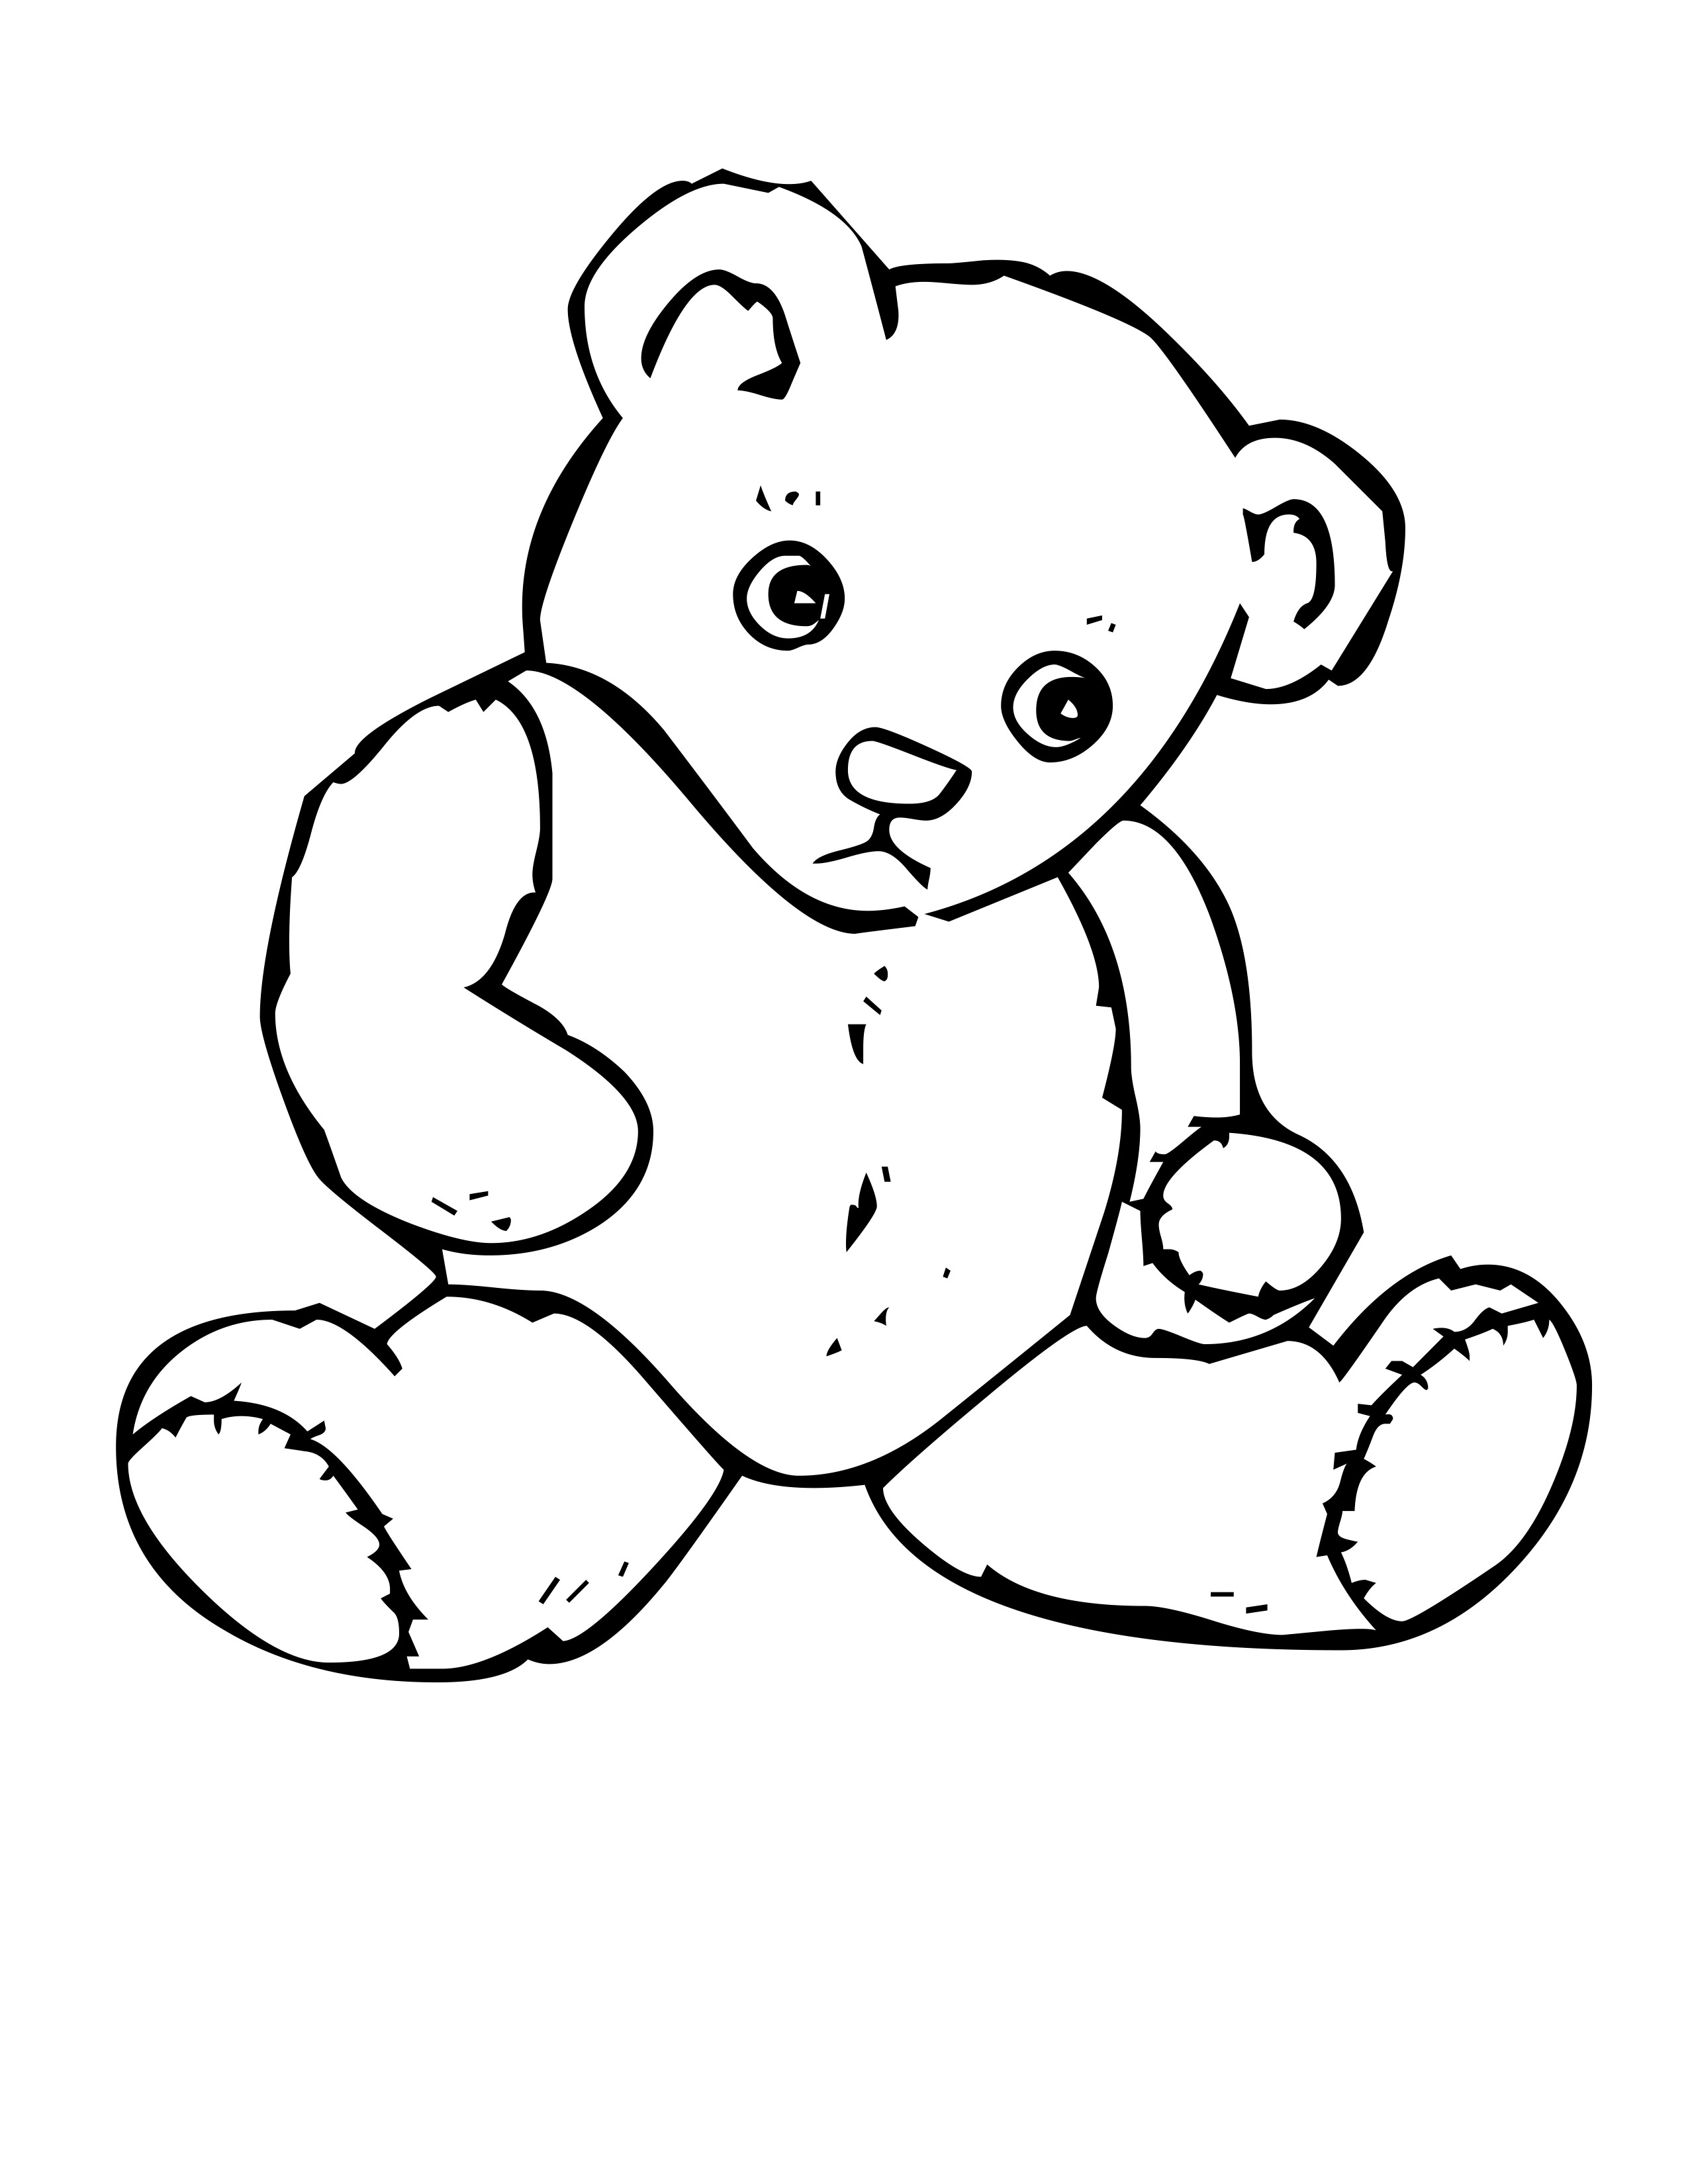 free pictures of teddy bears to colour free bear coloring pages to colour teddy pictures free bears of